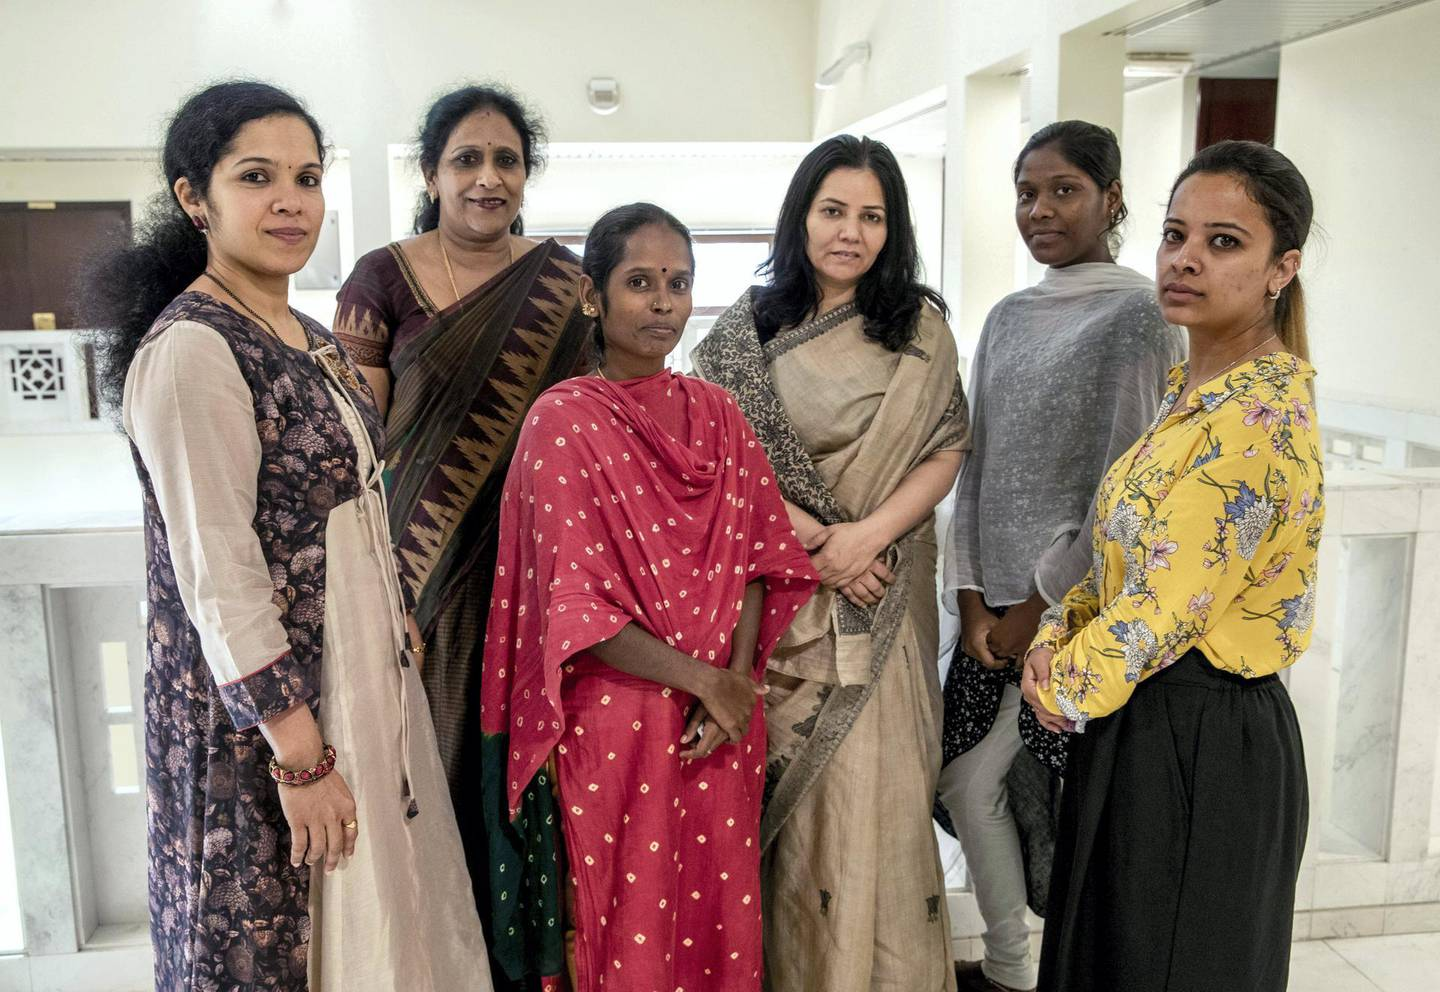 Abu Dhabi, United Arab Emirates, July 2, 2019.  This is for a runaway maids story. Veerammal Radhakishnanand ran away from an agent in Ajman and asked for help at the indian embassy.---  Embassy of India social workers helping domestic helpers in distress,  (center left) Veerammal Radhakrishnan and Lokeshwari Sudhakar. (2nd right)Victor Besa/The NationalSection:  NAReporter:  Ramola Talwar